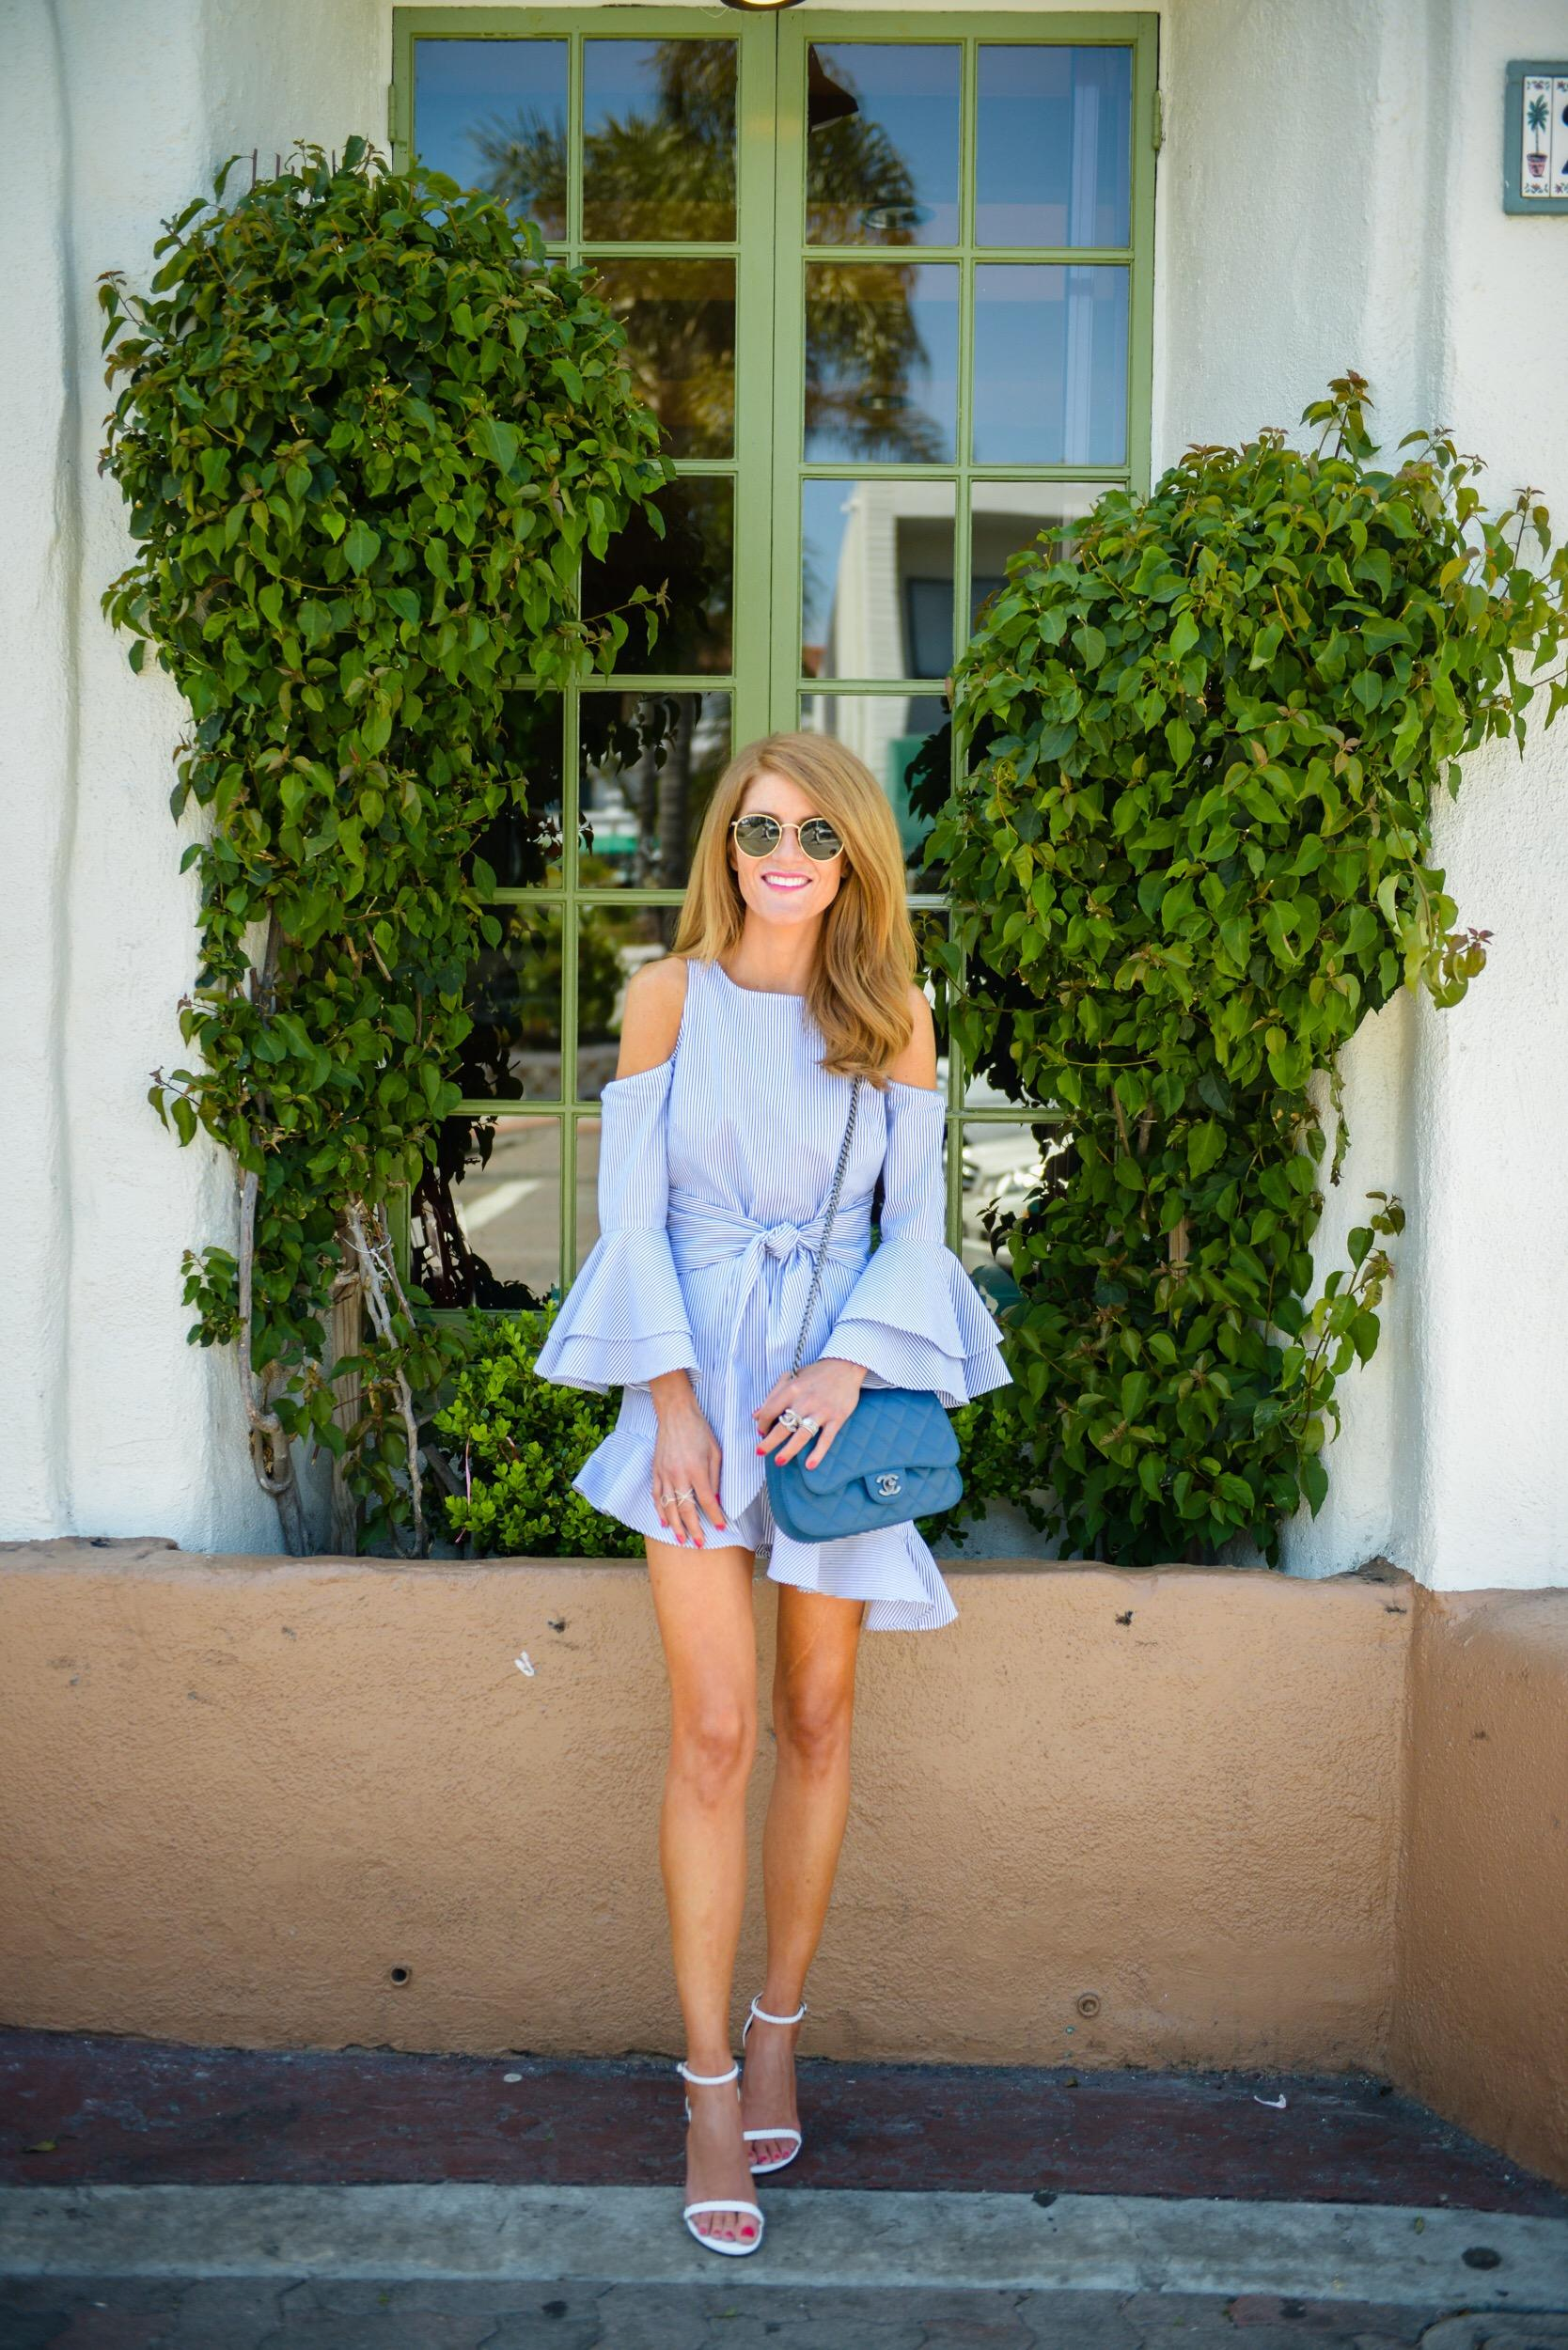 c1db8f49a8 ... this most fun striped dress from Intermix (it s on sale!! And so fun  they have their own in store brand now!) Summer is ALL about the blue and  white ...